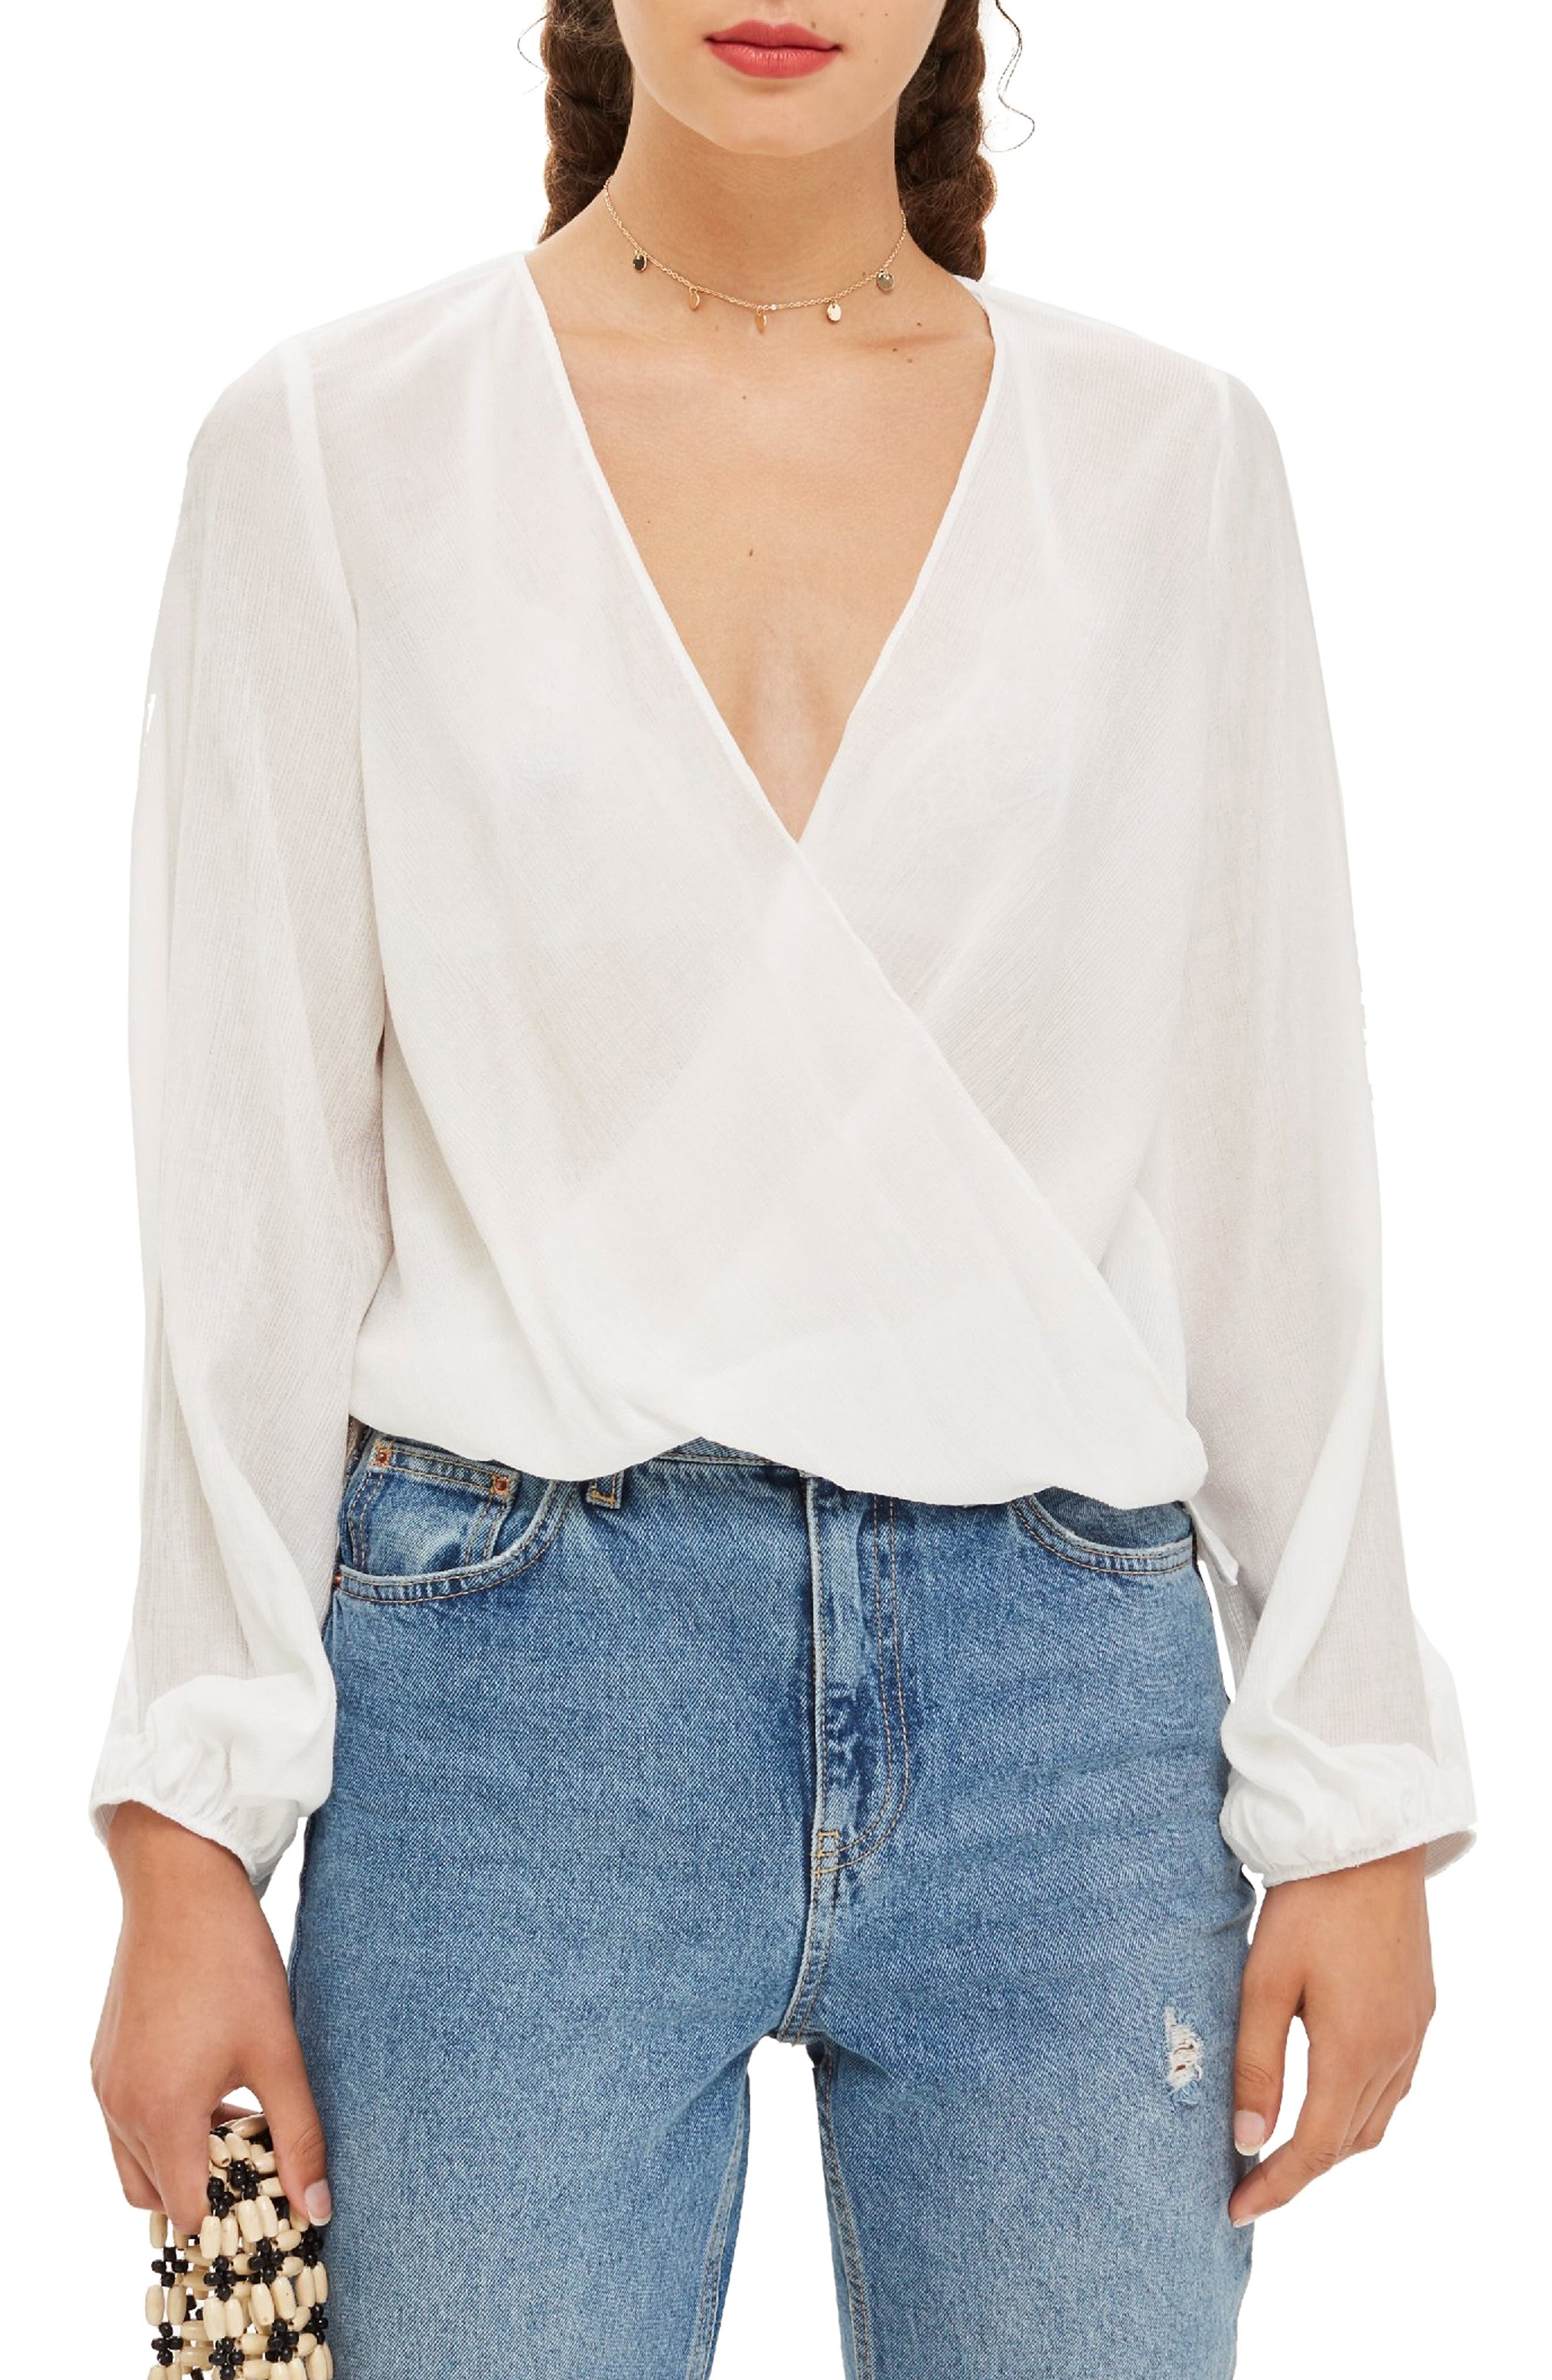 Topshop Womens Casual Camisole Top - Cheap Sast Cheap Sale High Quality Many Kinds Of Sale Online Newest Cheap Price Particular Discount tqrQxL